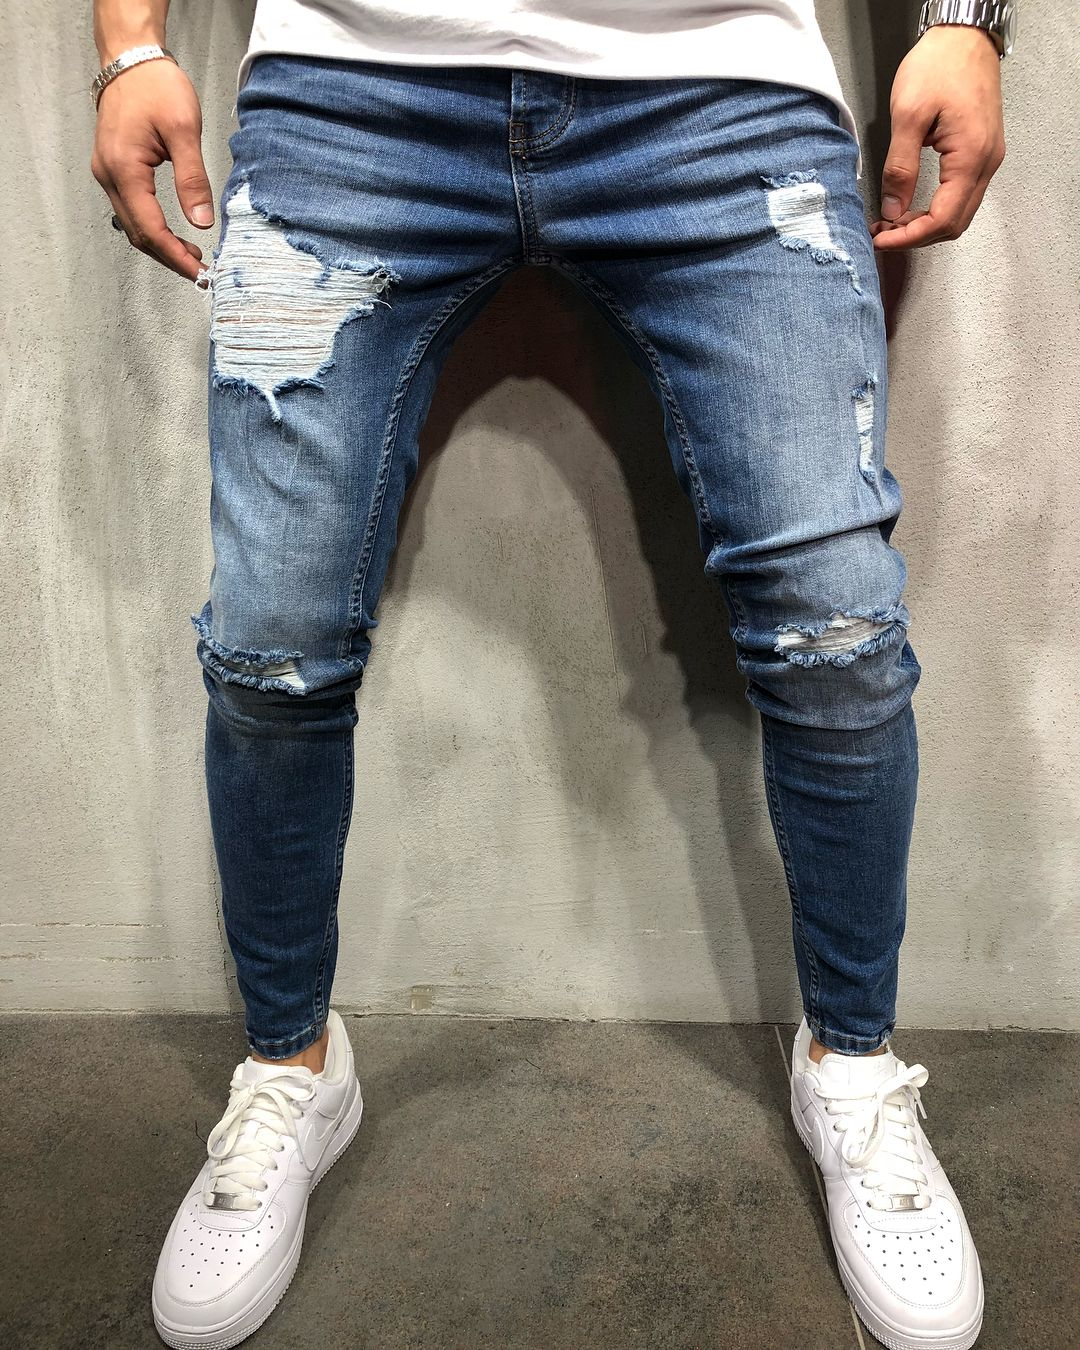 Pin By Santiago Mendez On 2y Premium Pants Mens Trendy Outfits Streetwear Jeans Mens Outfits